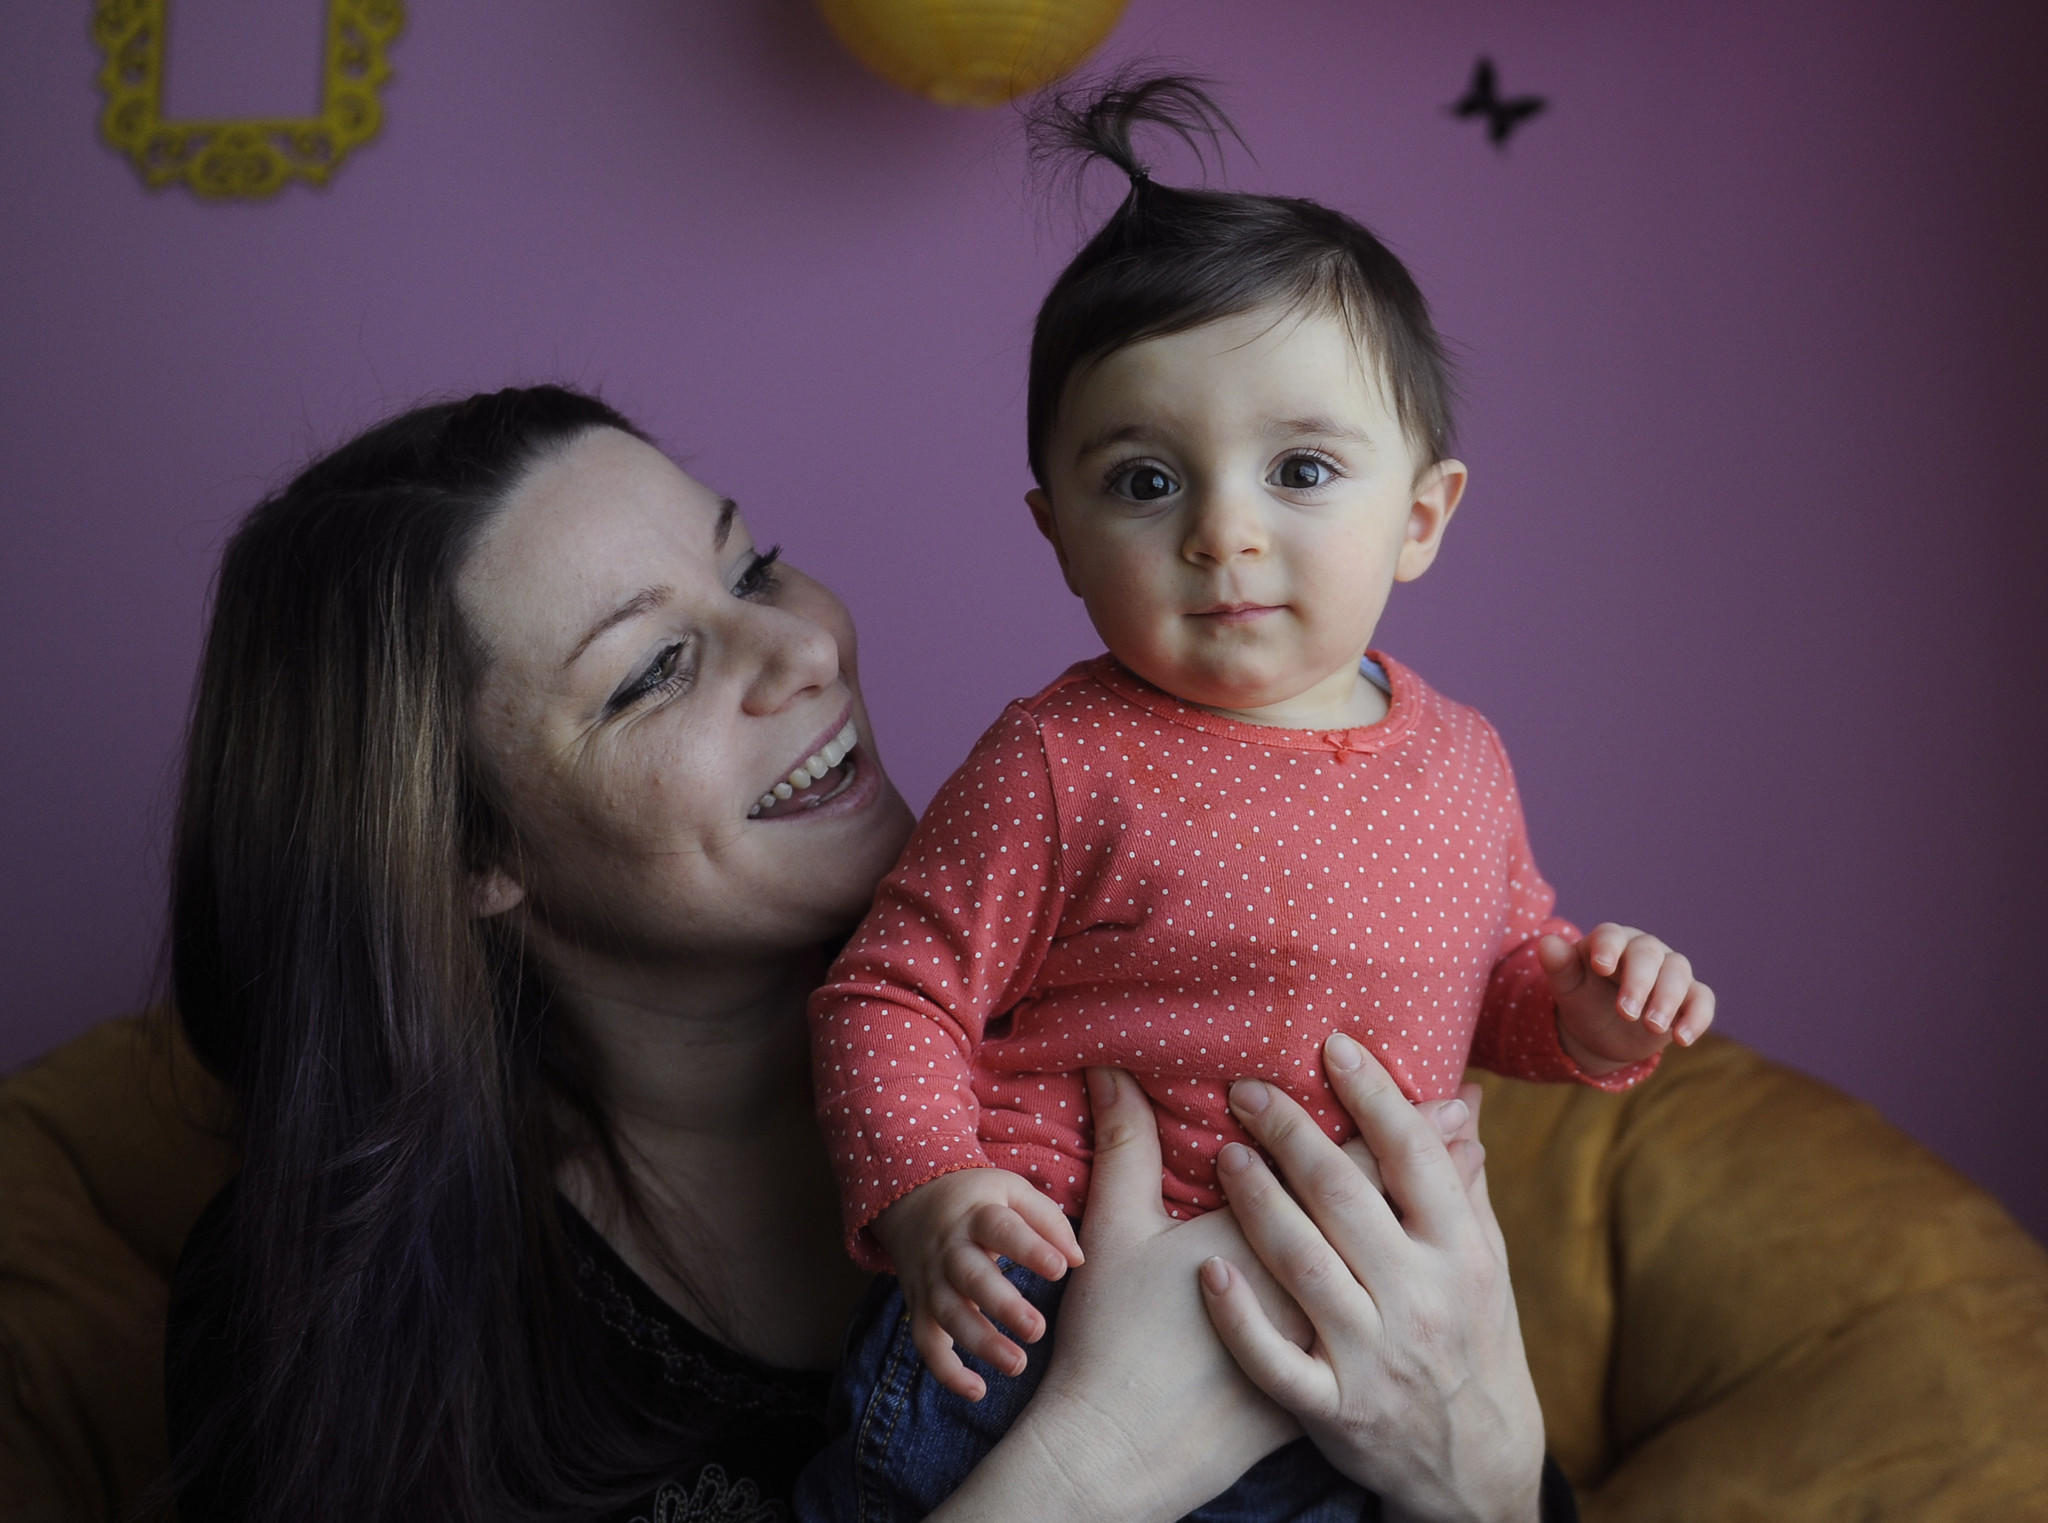 Christalene Karaiskakis holds her 10-month-old daughter, Anastasia, at their home. Karaiskakis had her placenta encapsulated and then she ingested it in pill form.